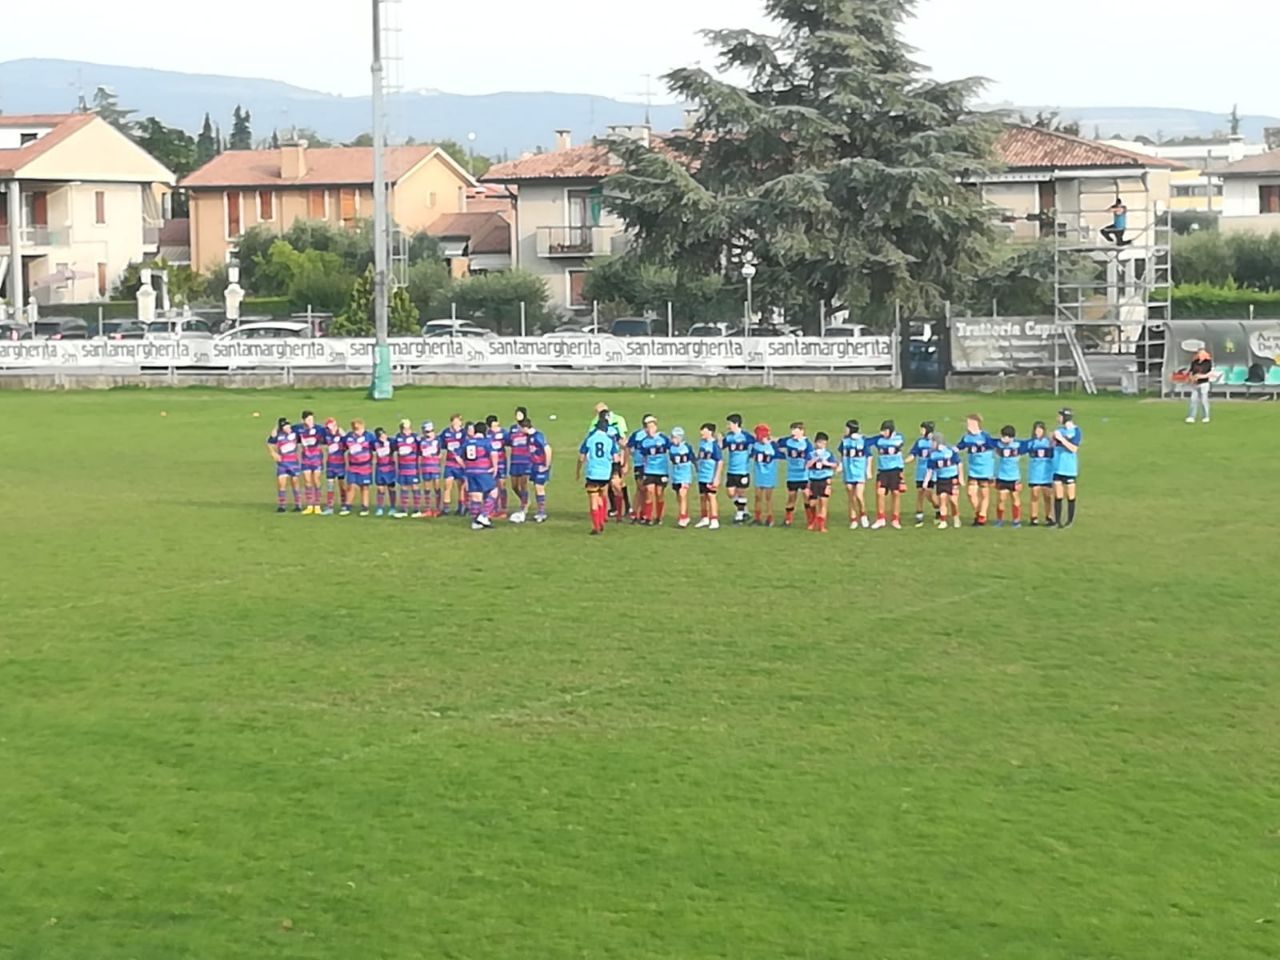 Prima sfida per l'under 14 Valpo West Lupos